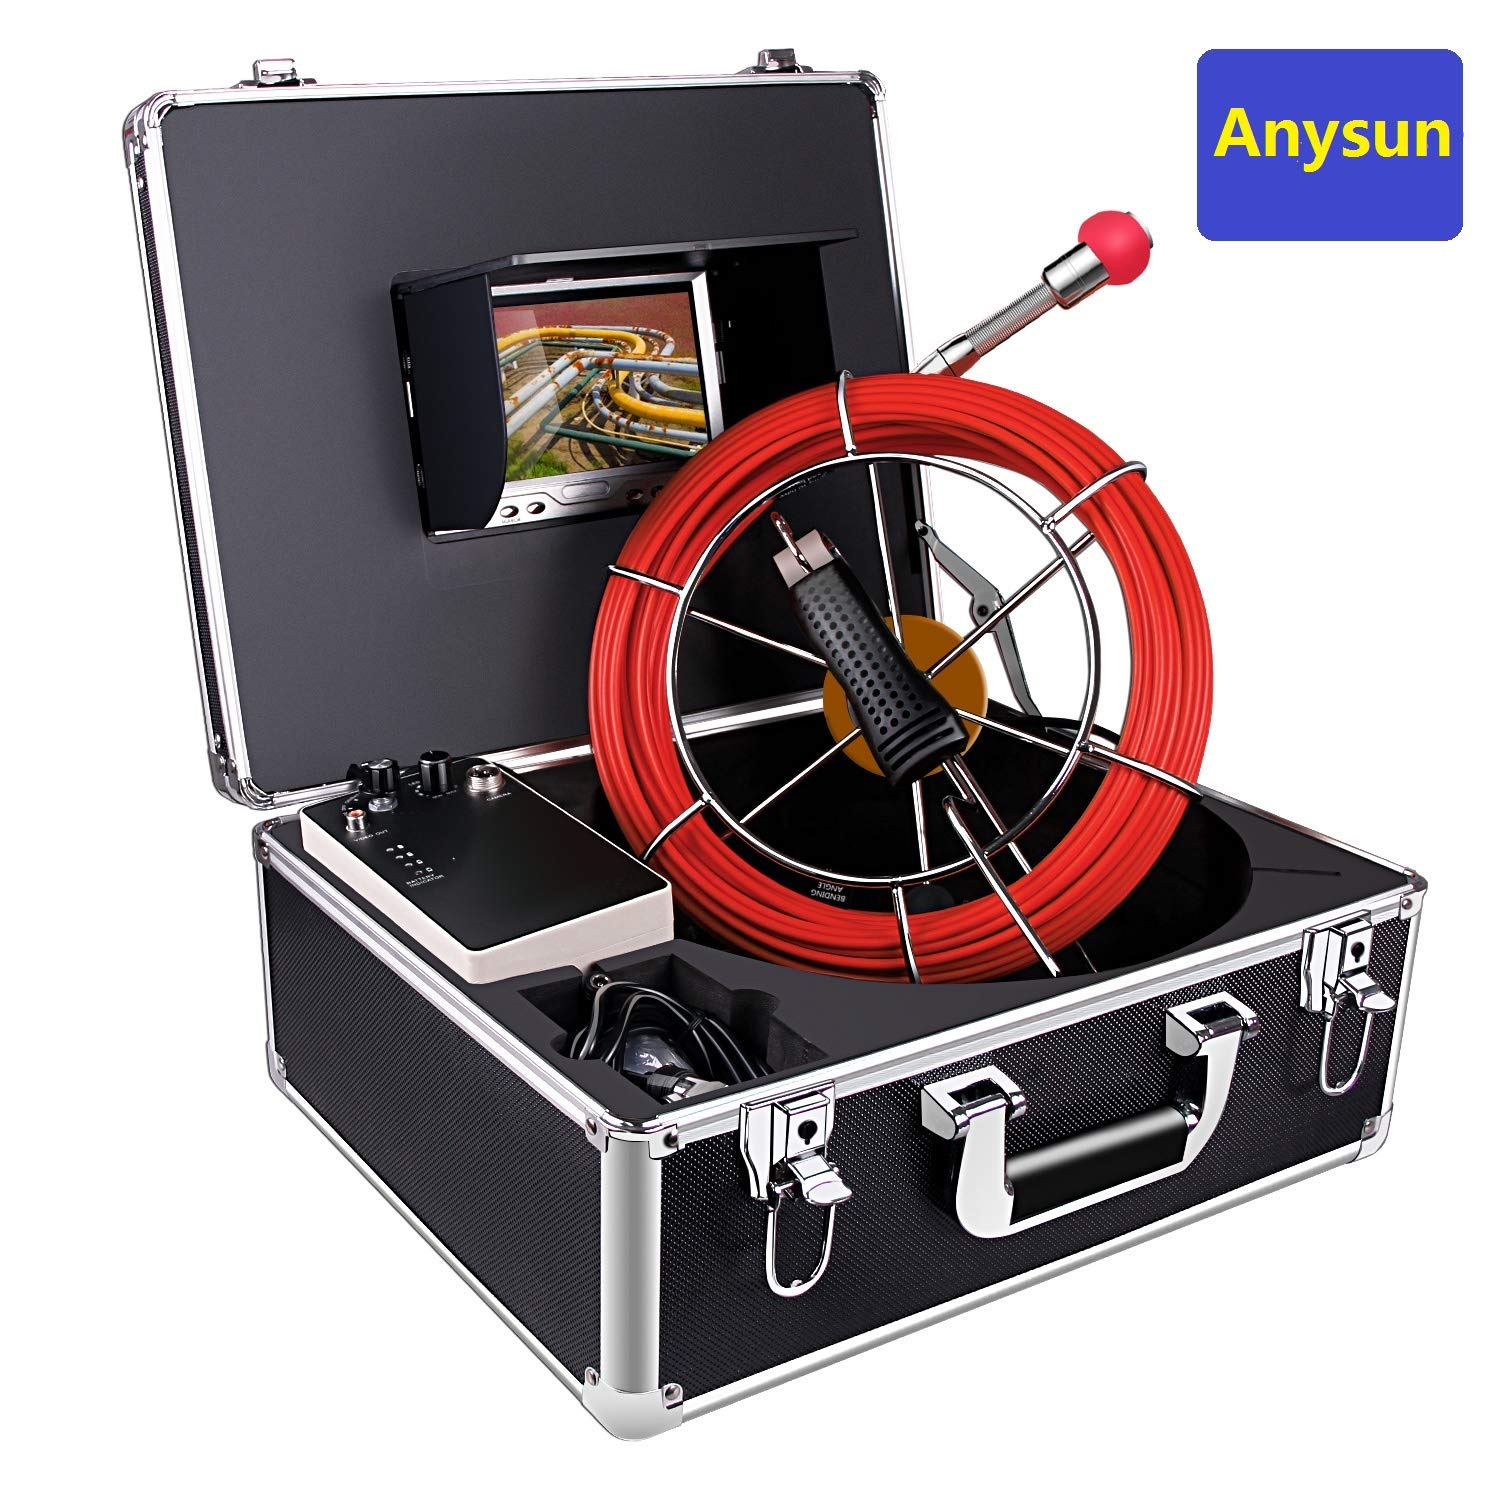 Sewer Pipe Inspction Camera,Anysun 20m-65ft Cable with Distance Counter - Plumbing Snake Industrial Endoscope 4500mAh Battery 7 Inch Color LCD Monitor Waterproof IP68 Borescope Snake Cameras by Anysun